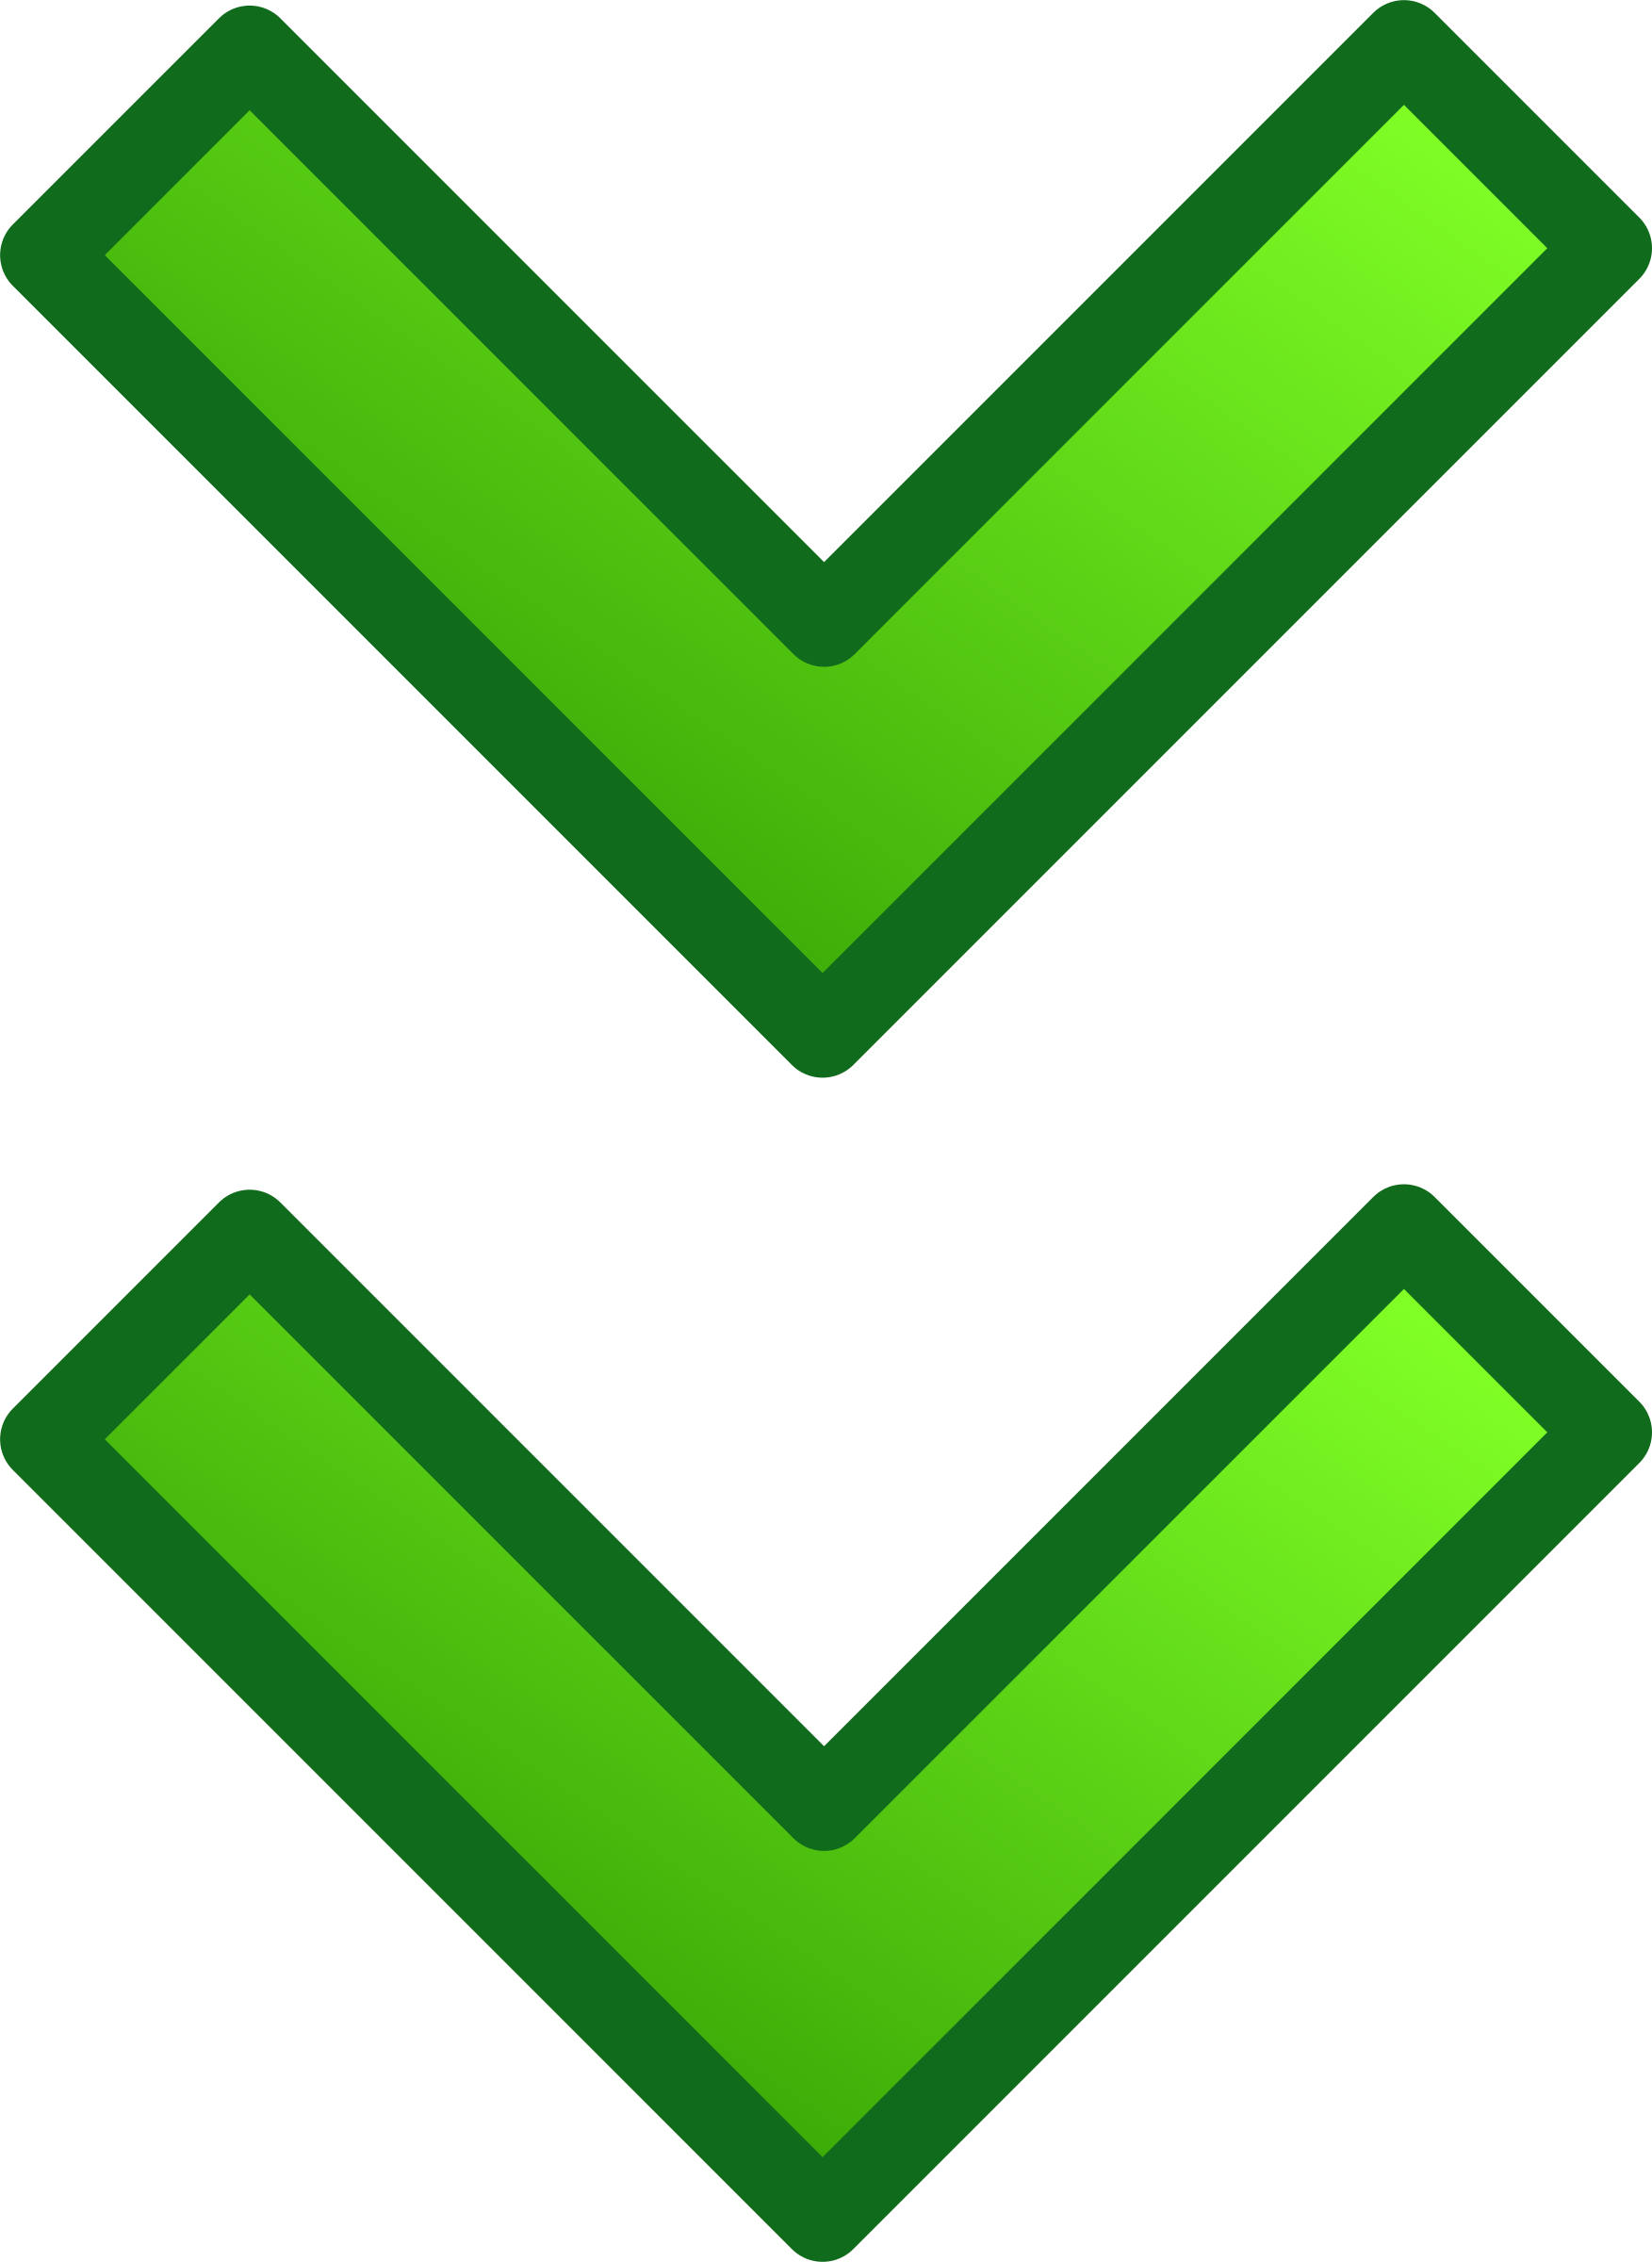 Arrows clipart animated. Green double set big